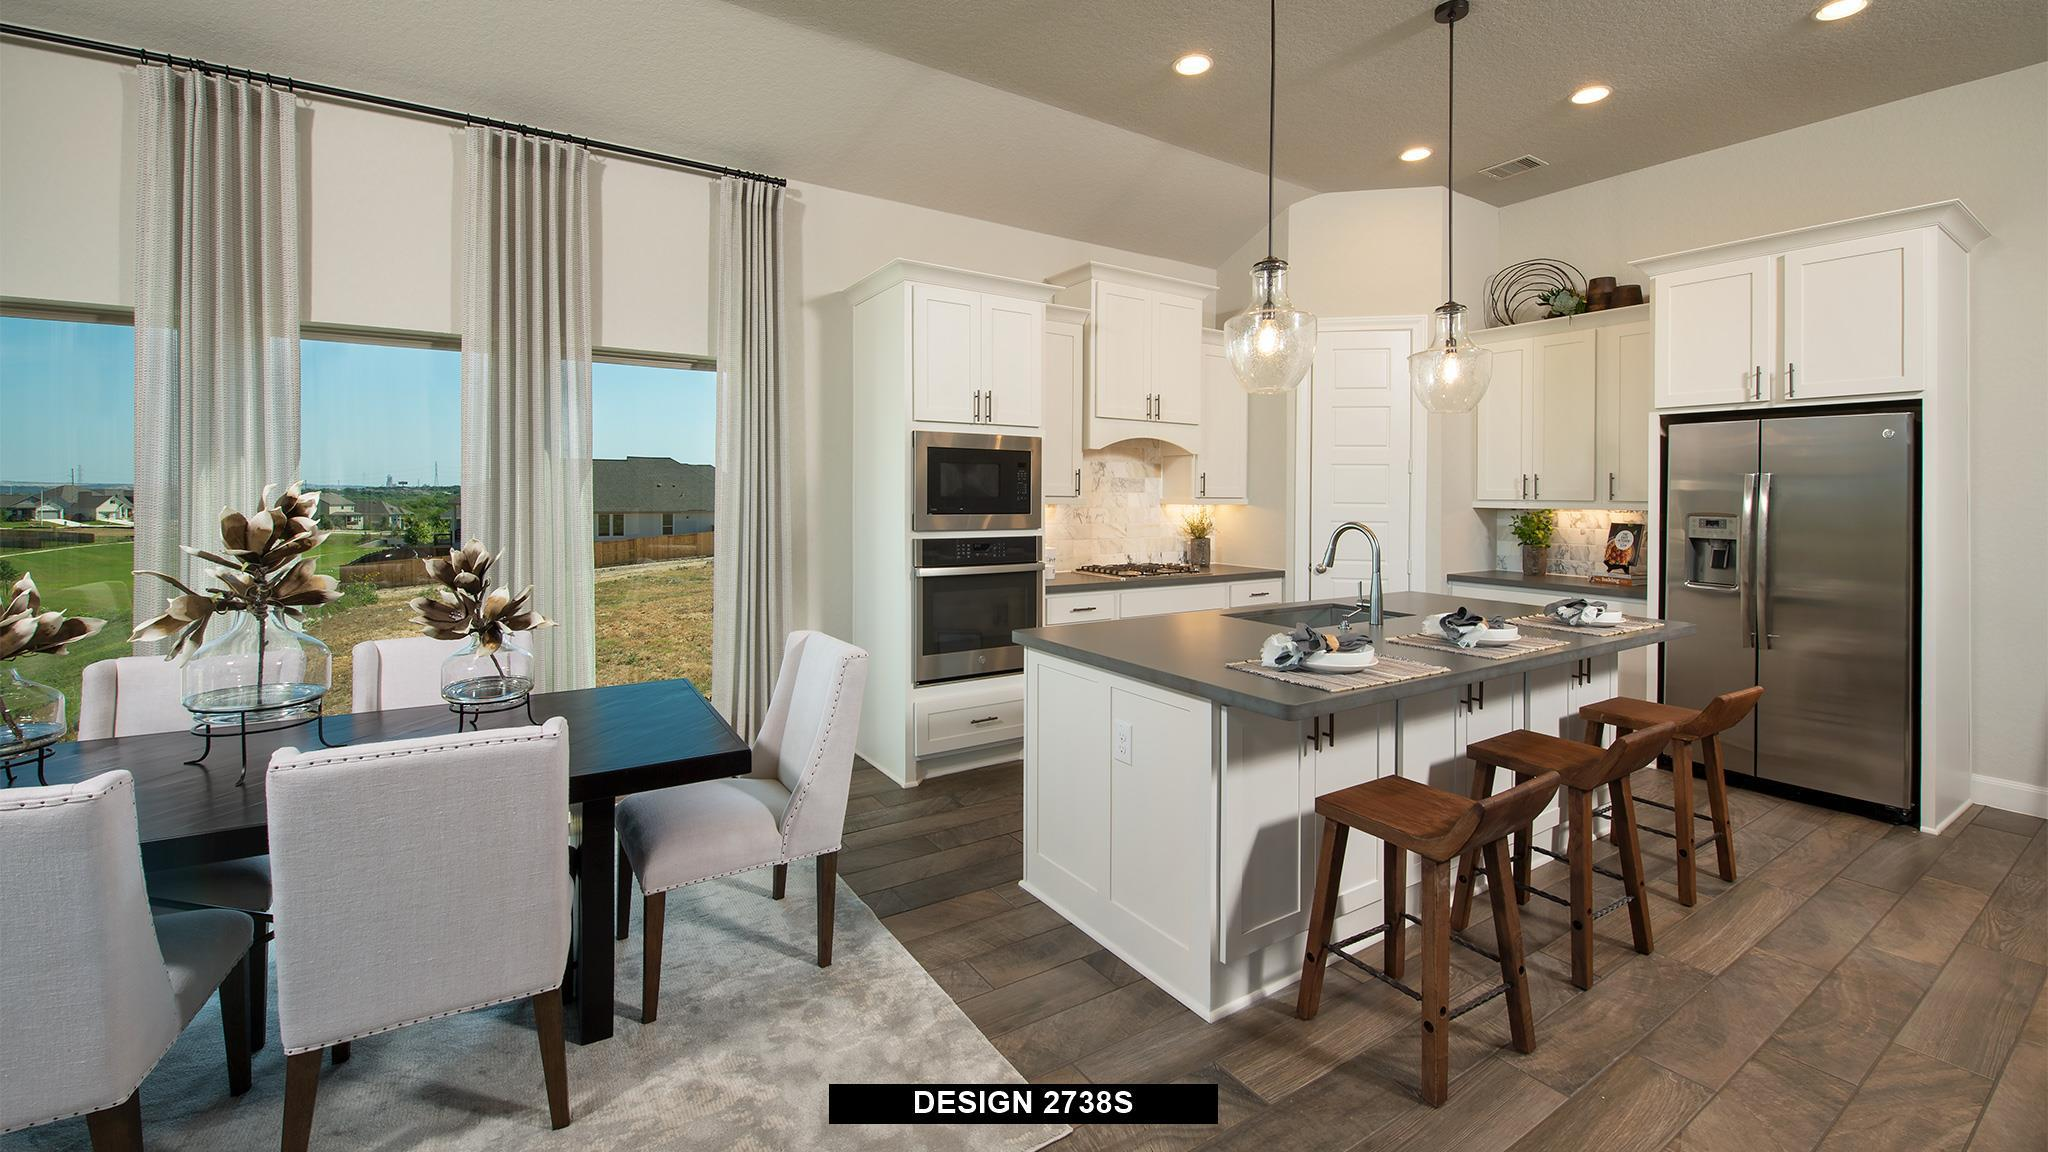 Kitchen featured in the 2738S By Perry Homes in San Antonio, TX